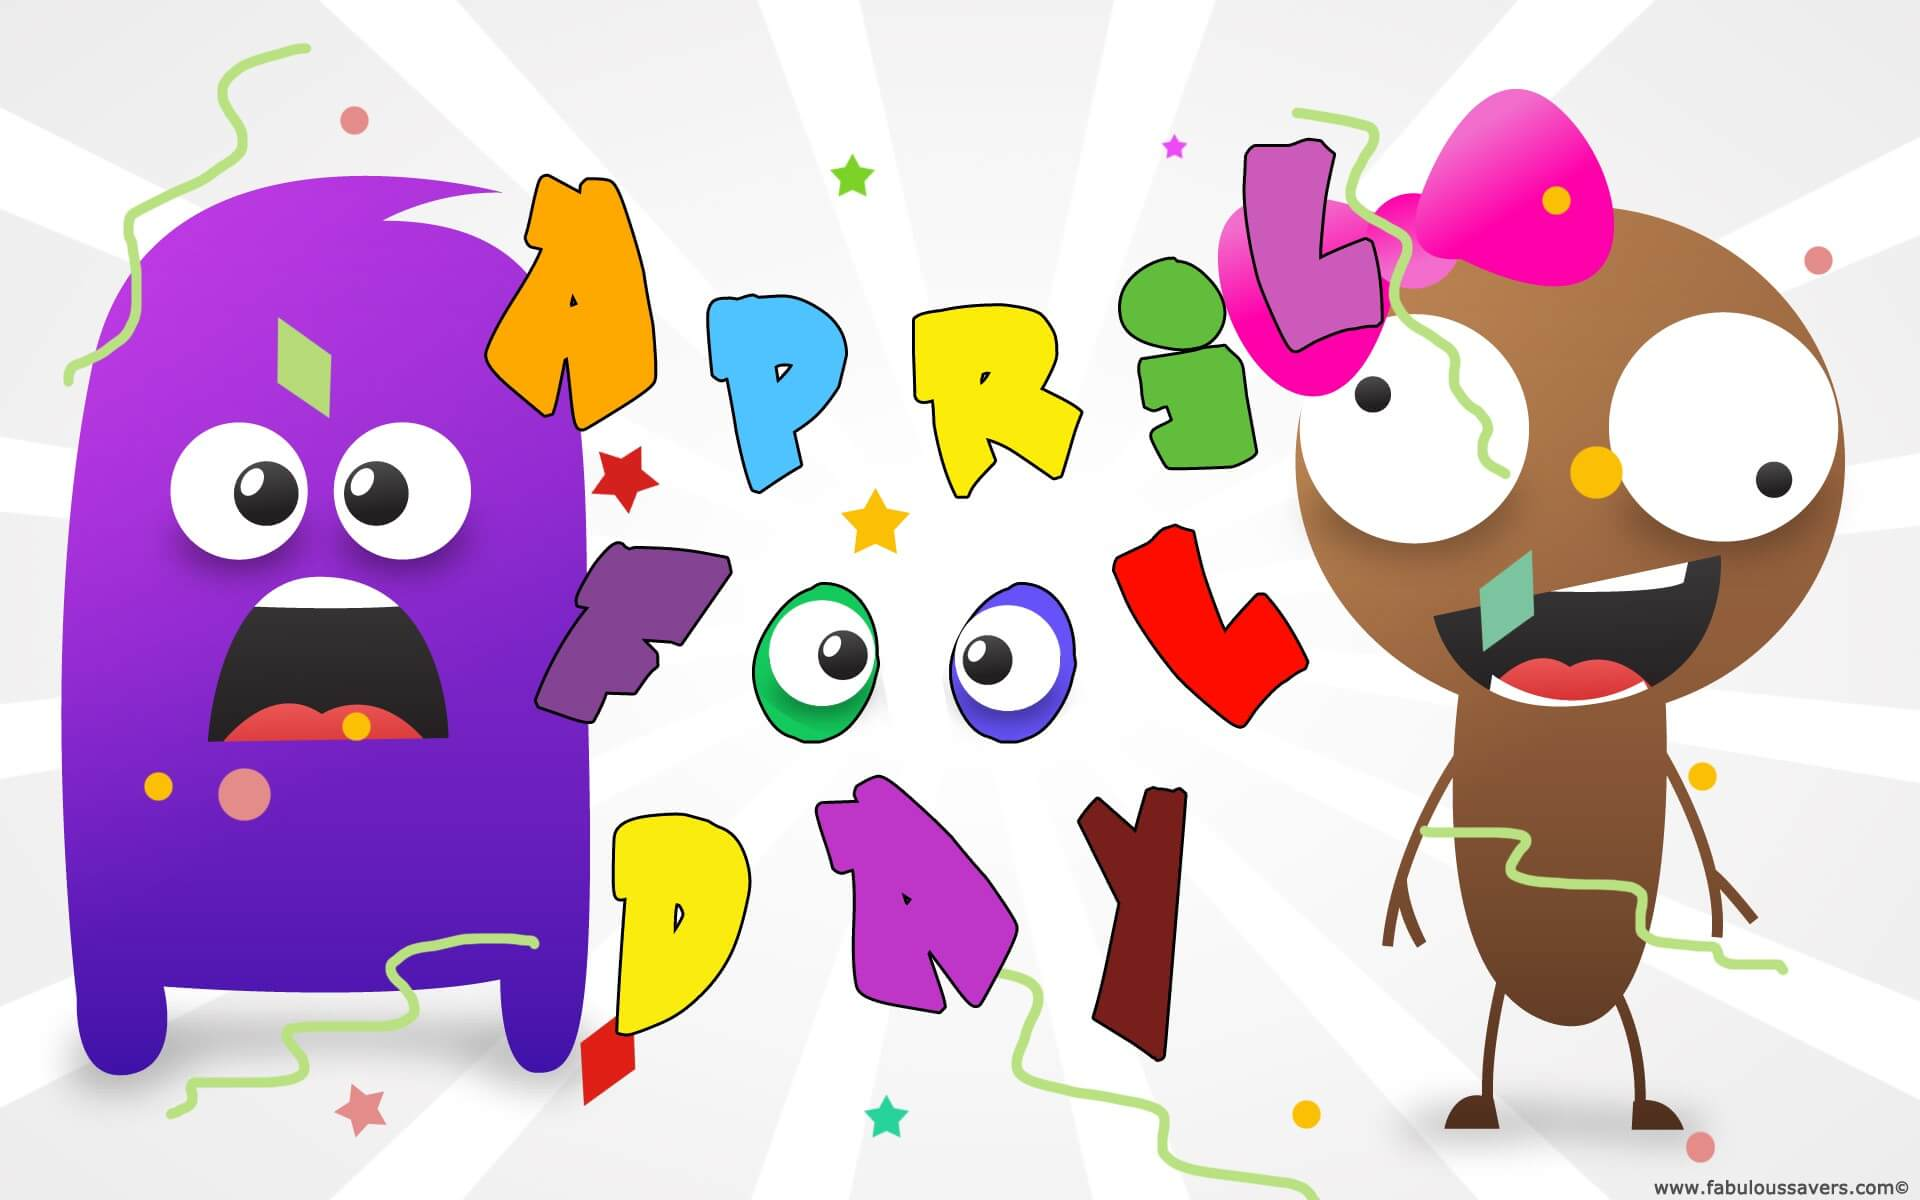 april fools day image wallpaper hd free